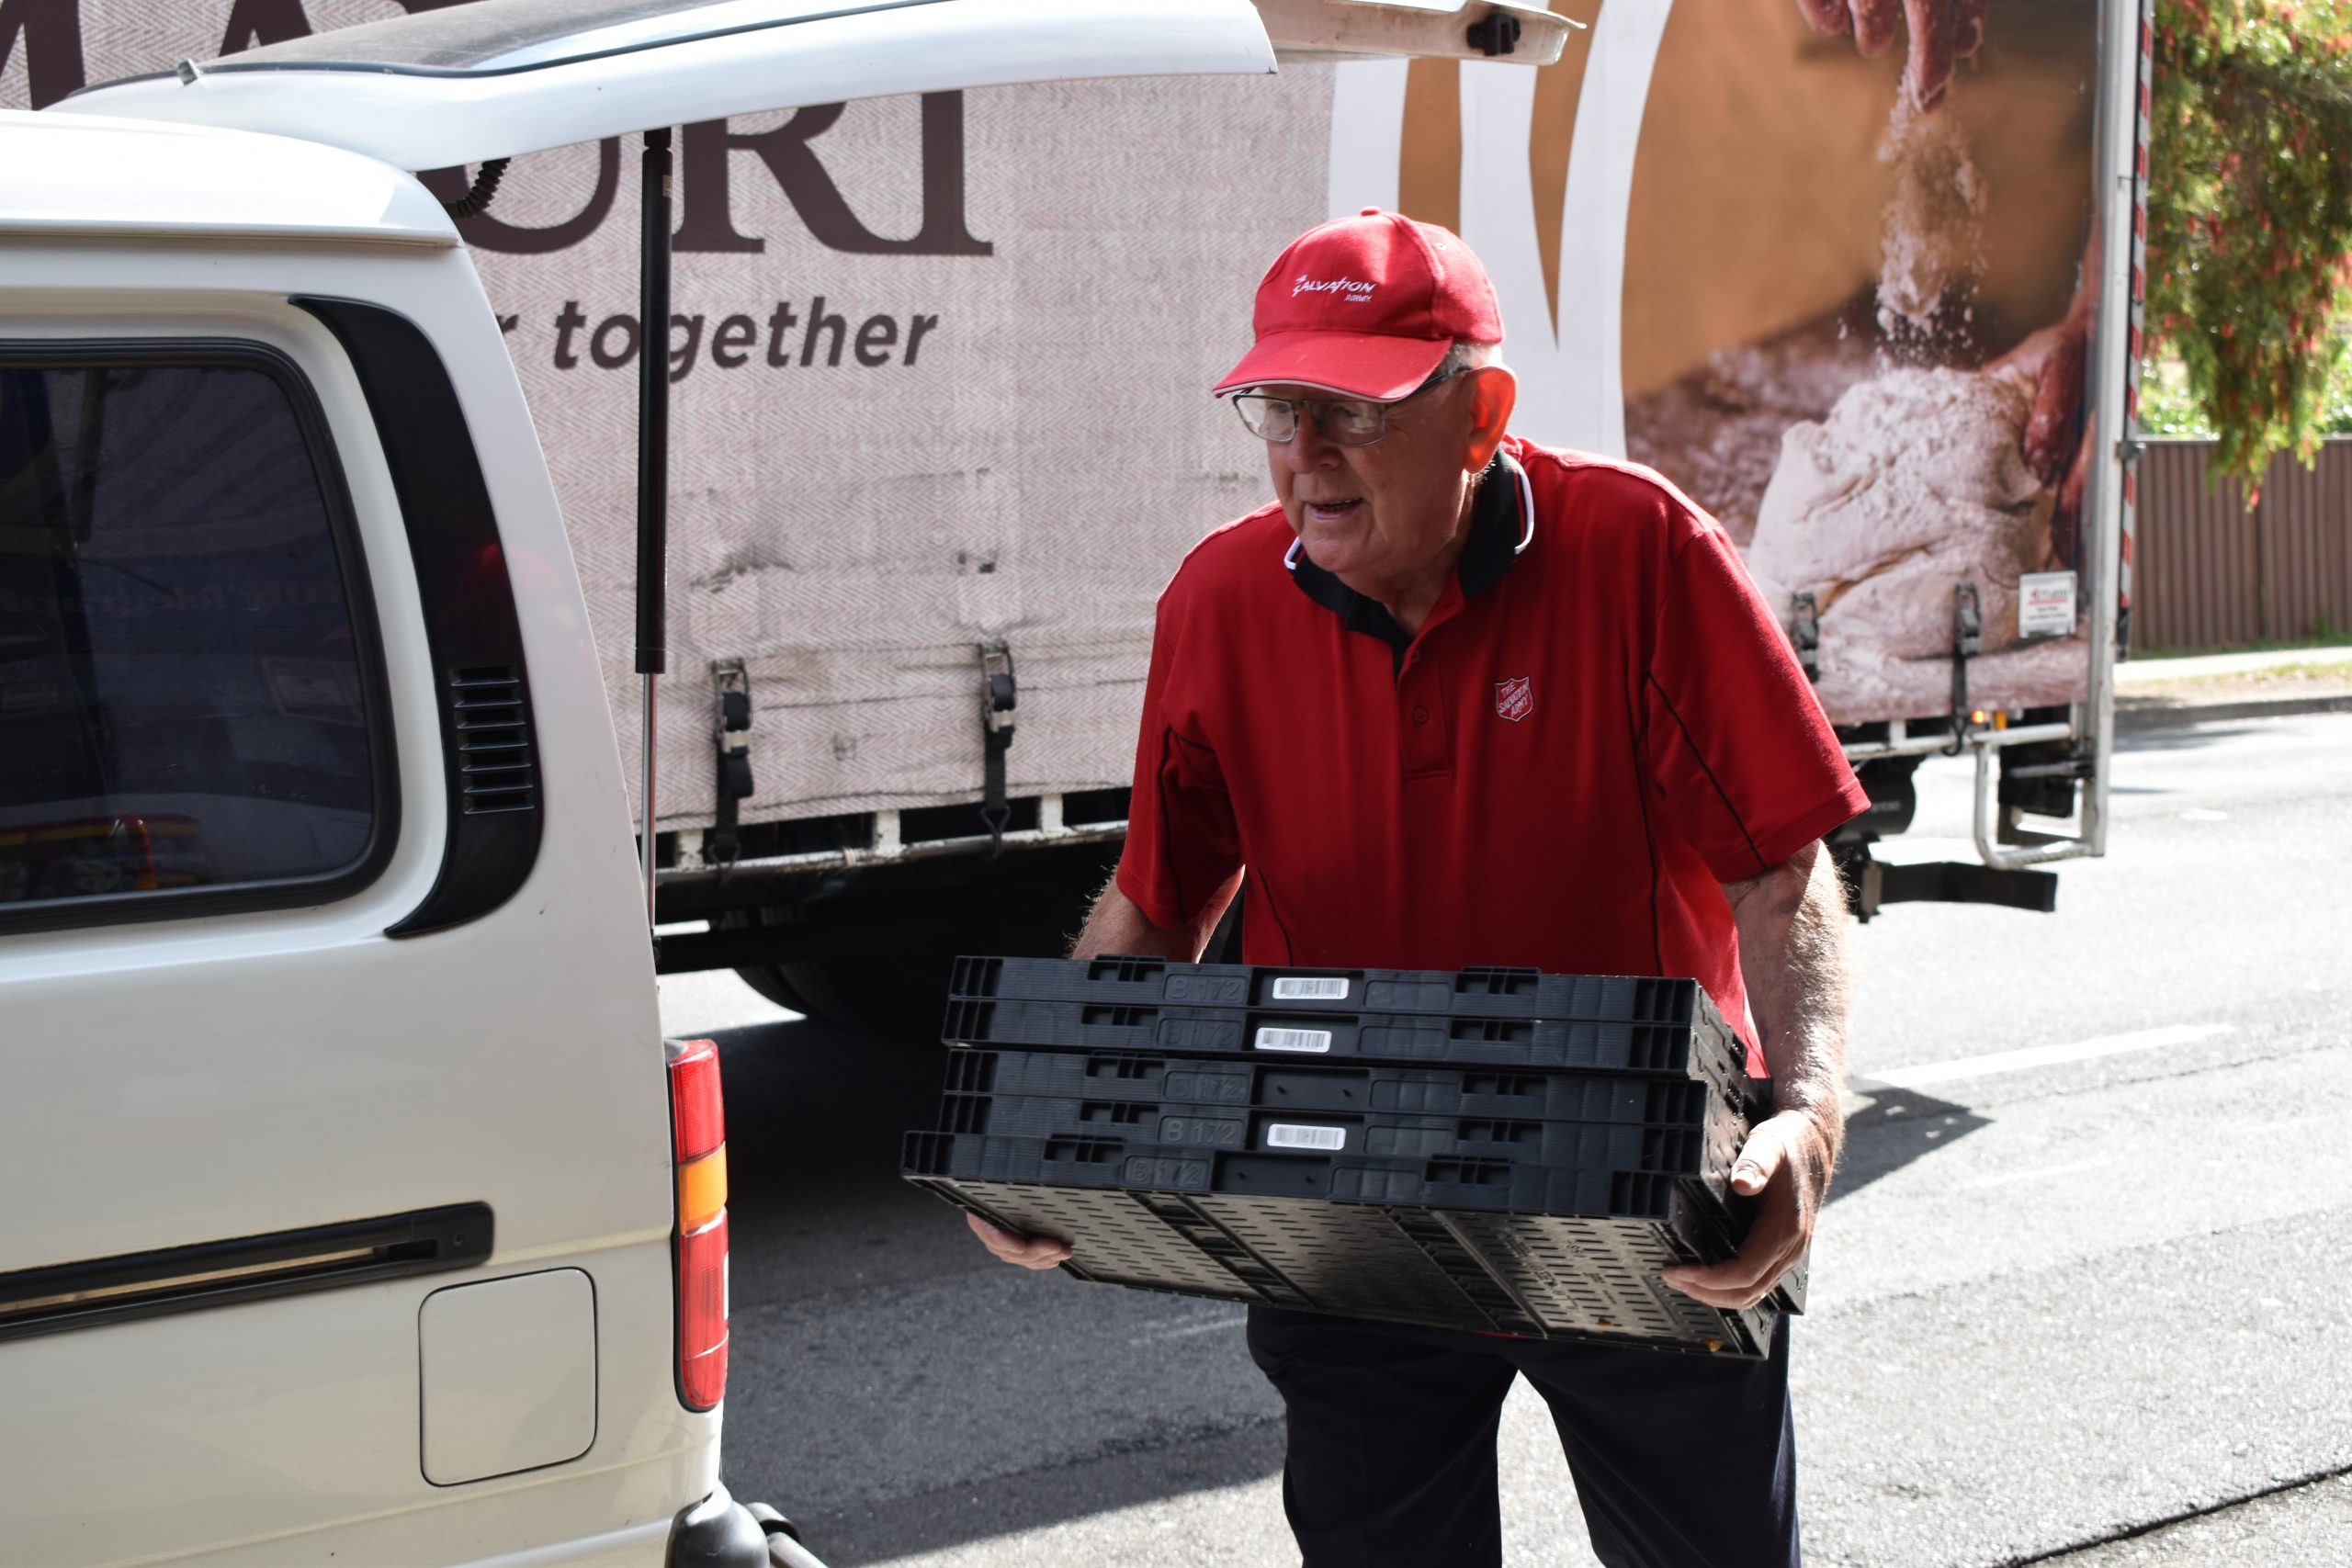 Hilton unloading crates from the back of his van